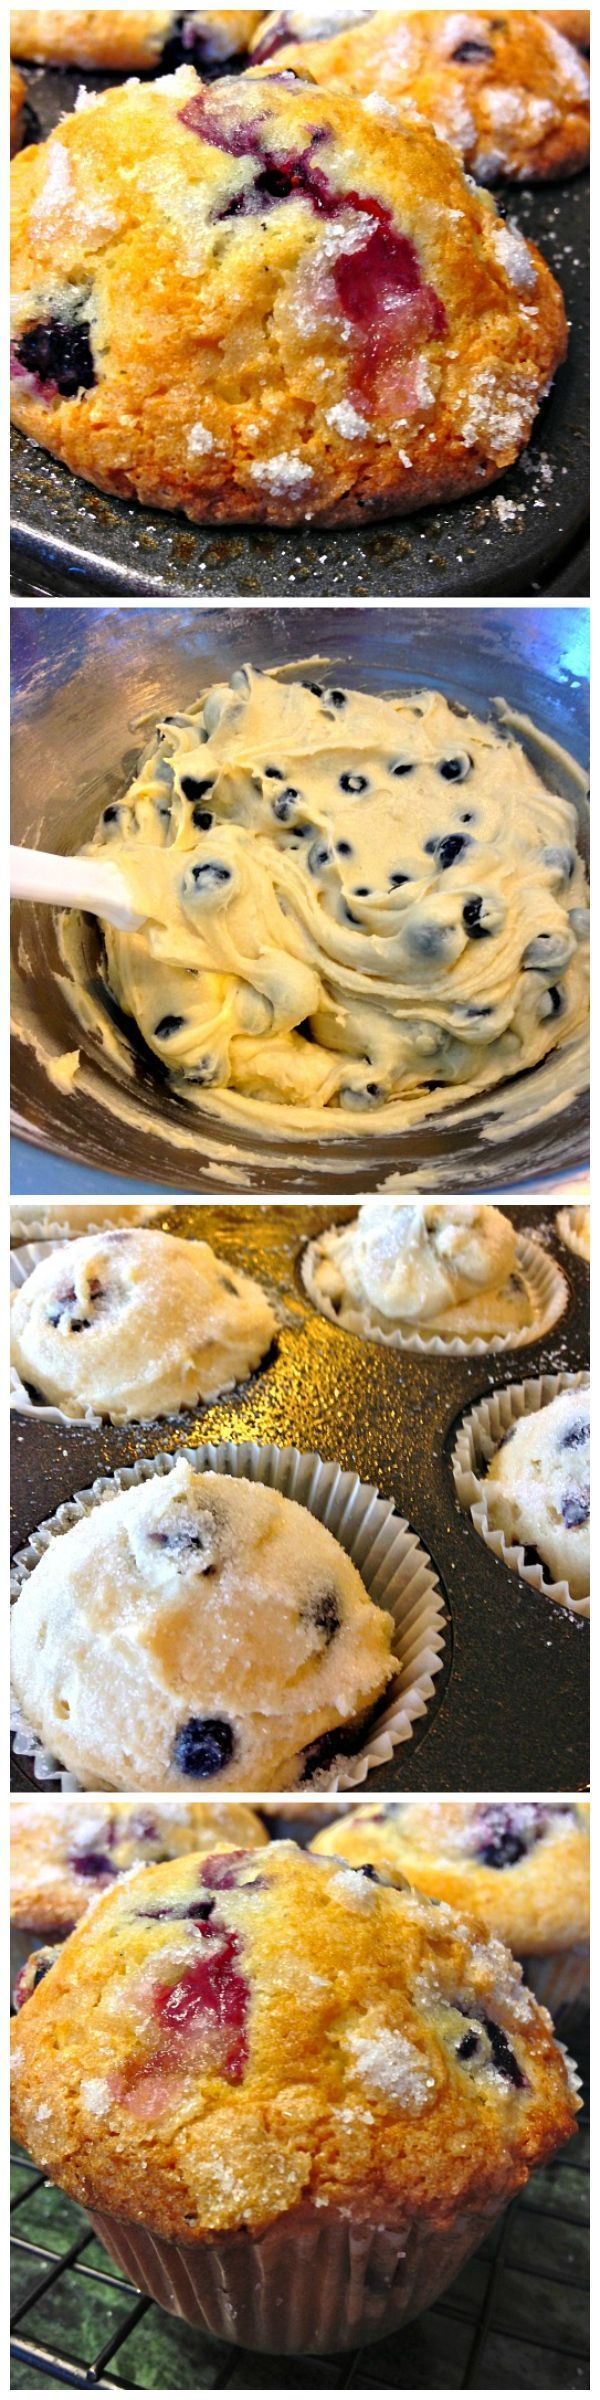 Our Bakery Style Blueberry Muffins are moist & bursting with juicy blueberries! Quite possibly the most scrumptious blueberry muffins you may ever make!